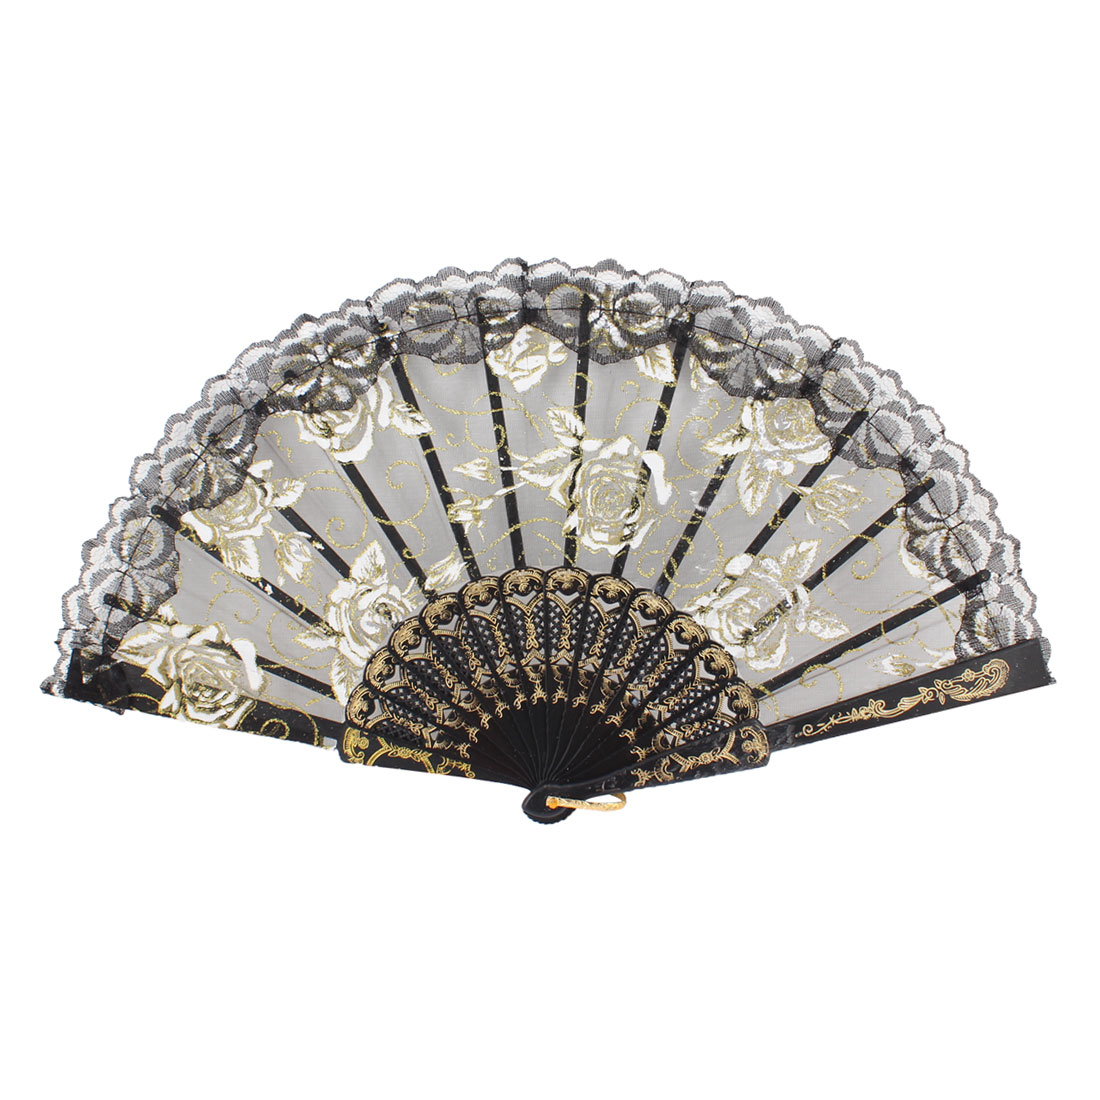 White Shiny Sequin Floral Decor Black Folding Organza Hand Fan for Woman Dancing